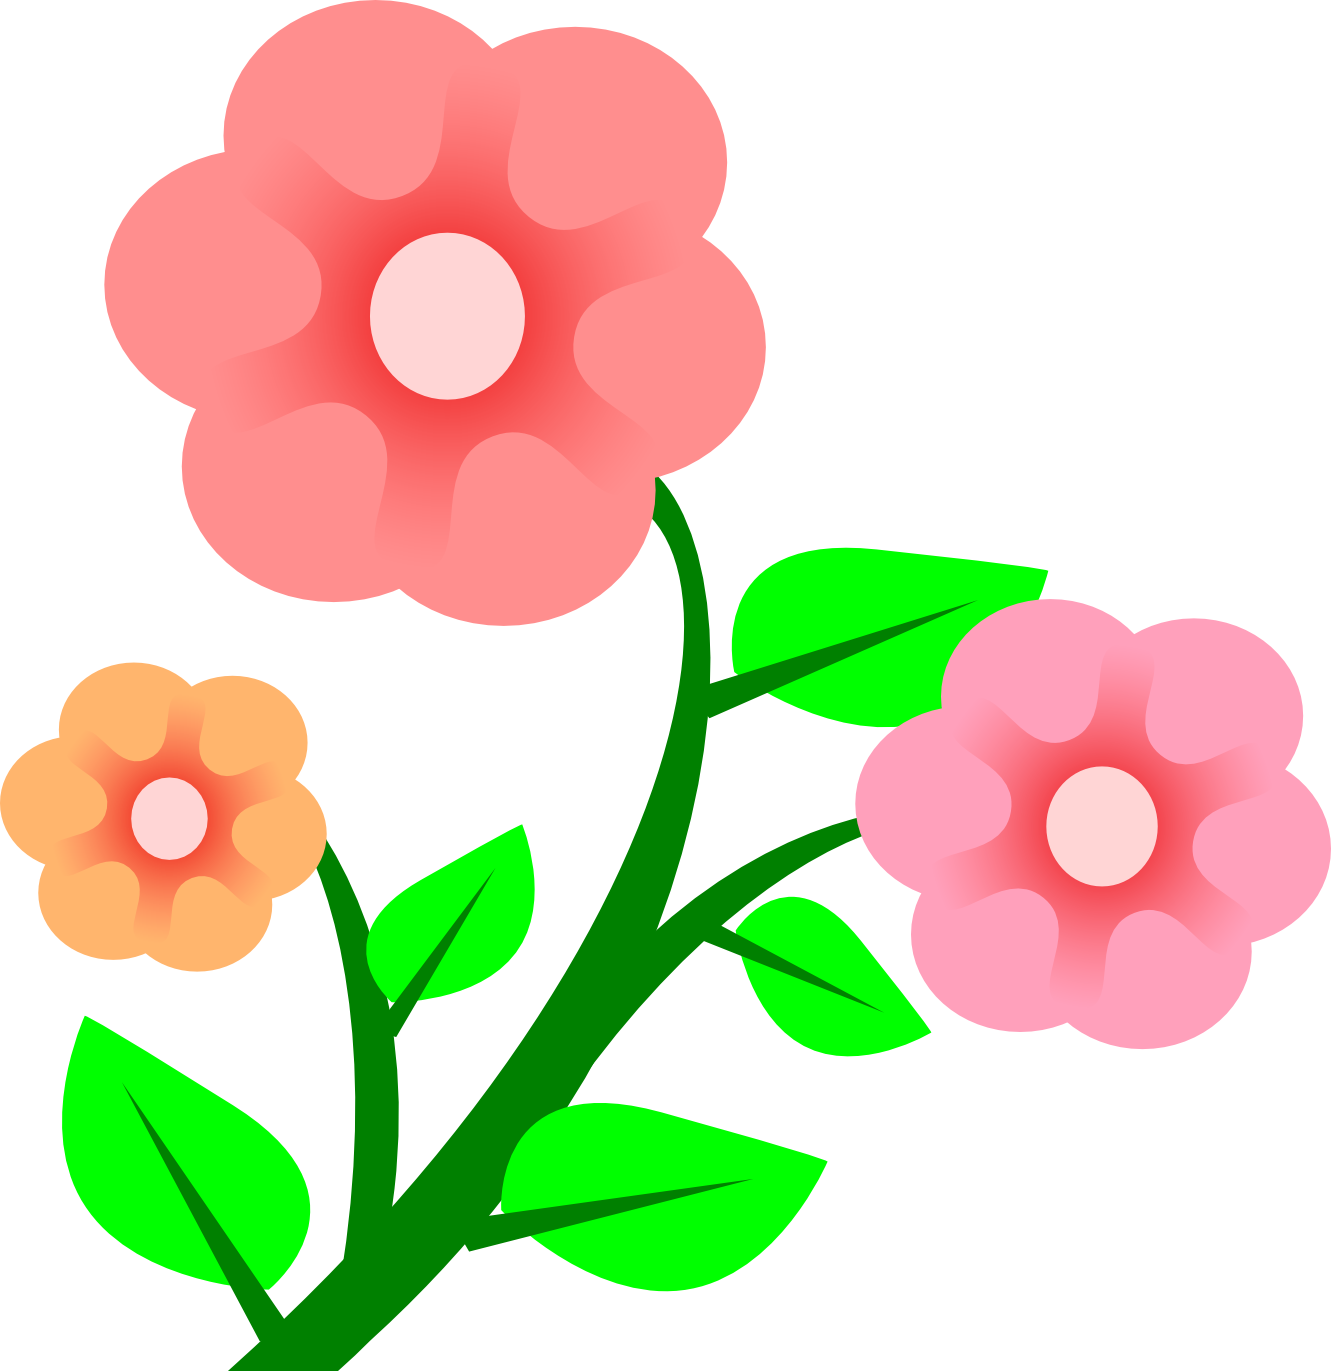 Free Flower Clipart At Getdrawings Free For Personal Use Free